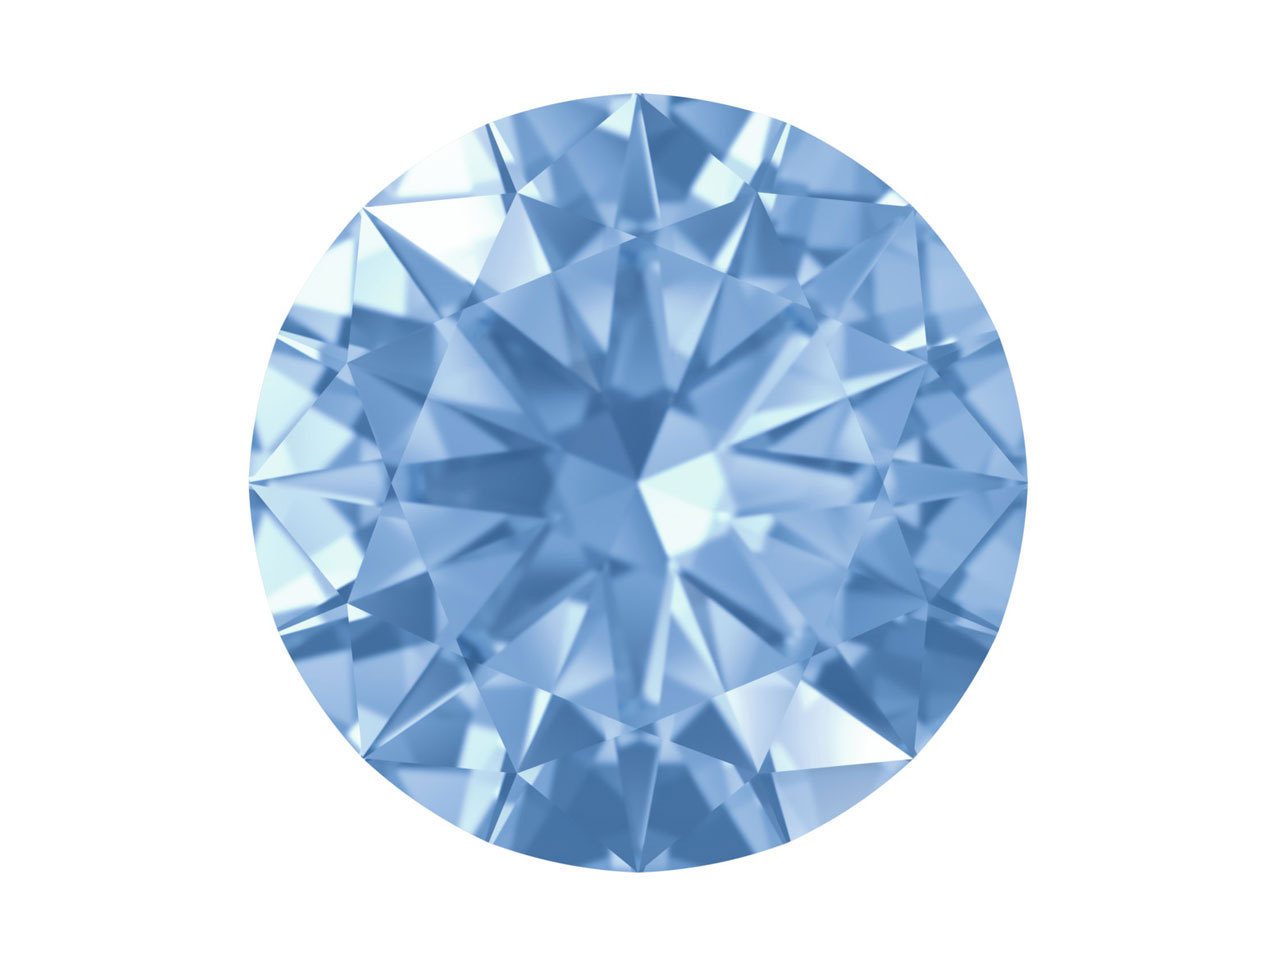 Swarovski Gemstones Blue Sapphire  Round Brilliant Cut 1.5mm Very     Light Blue